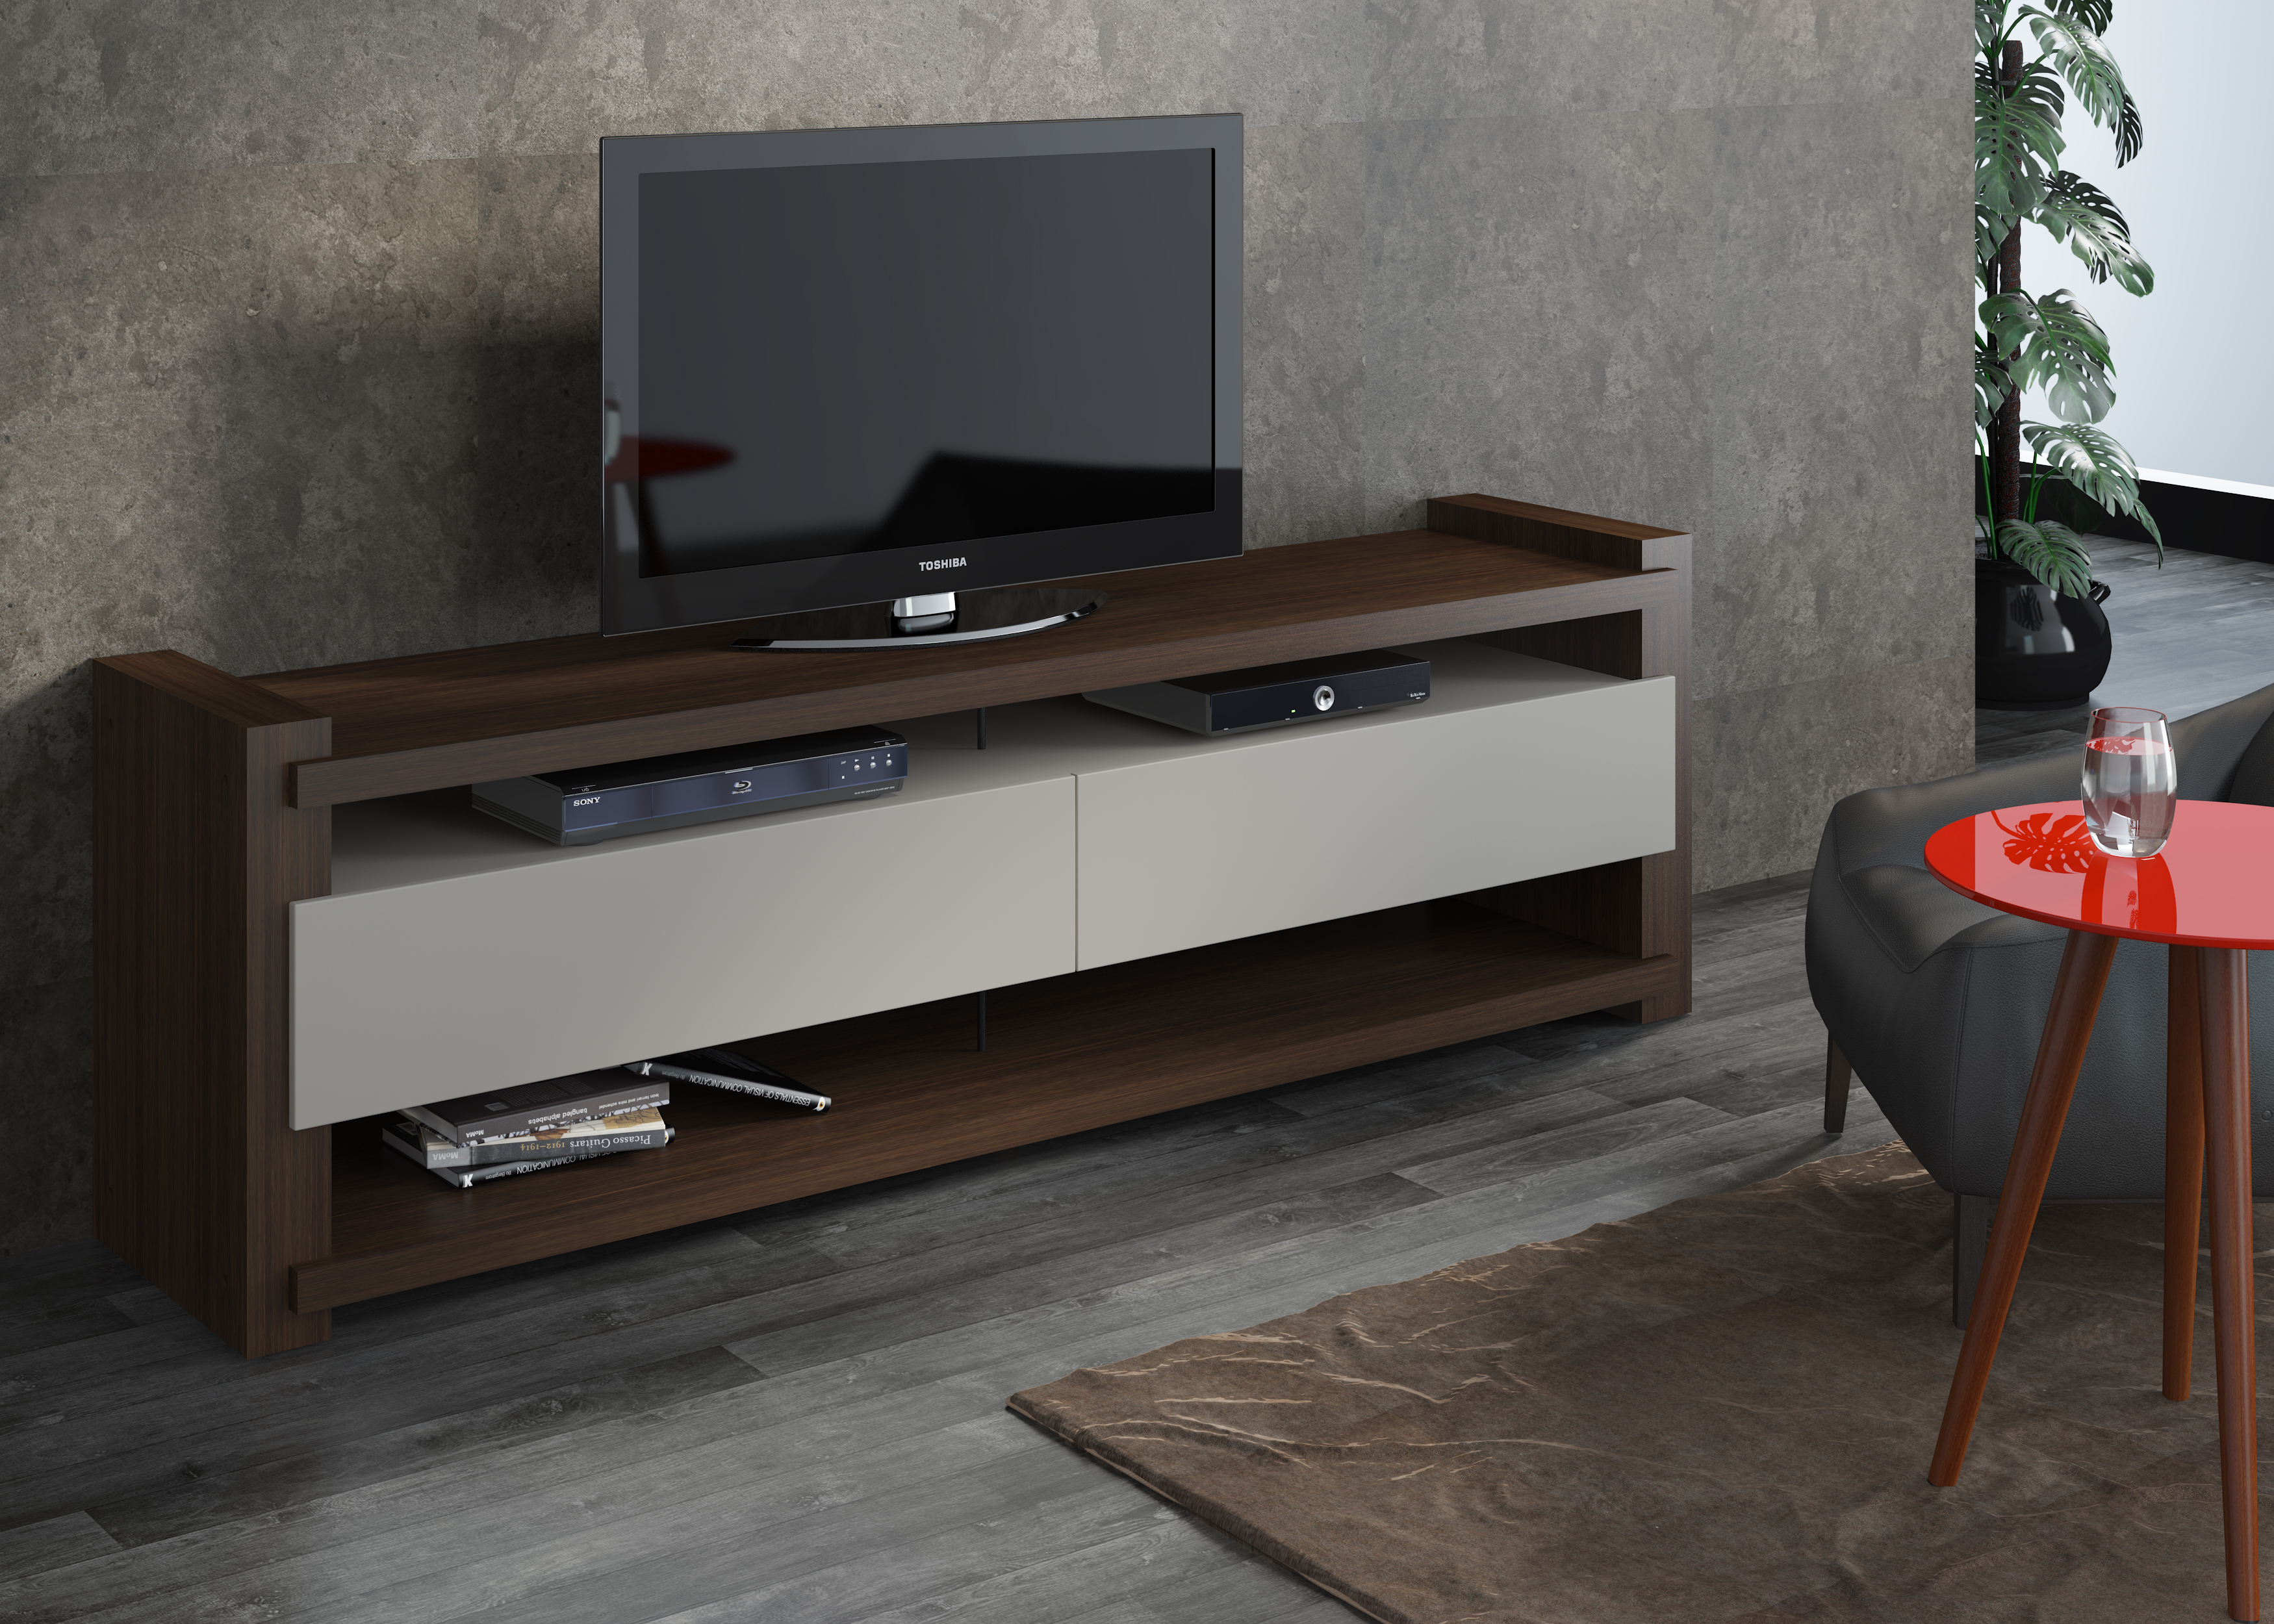 27011 Noblesse Tv Cabinet Wenge/off White